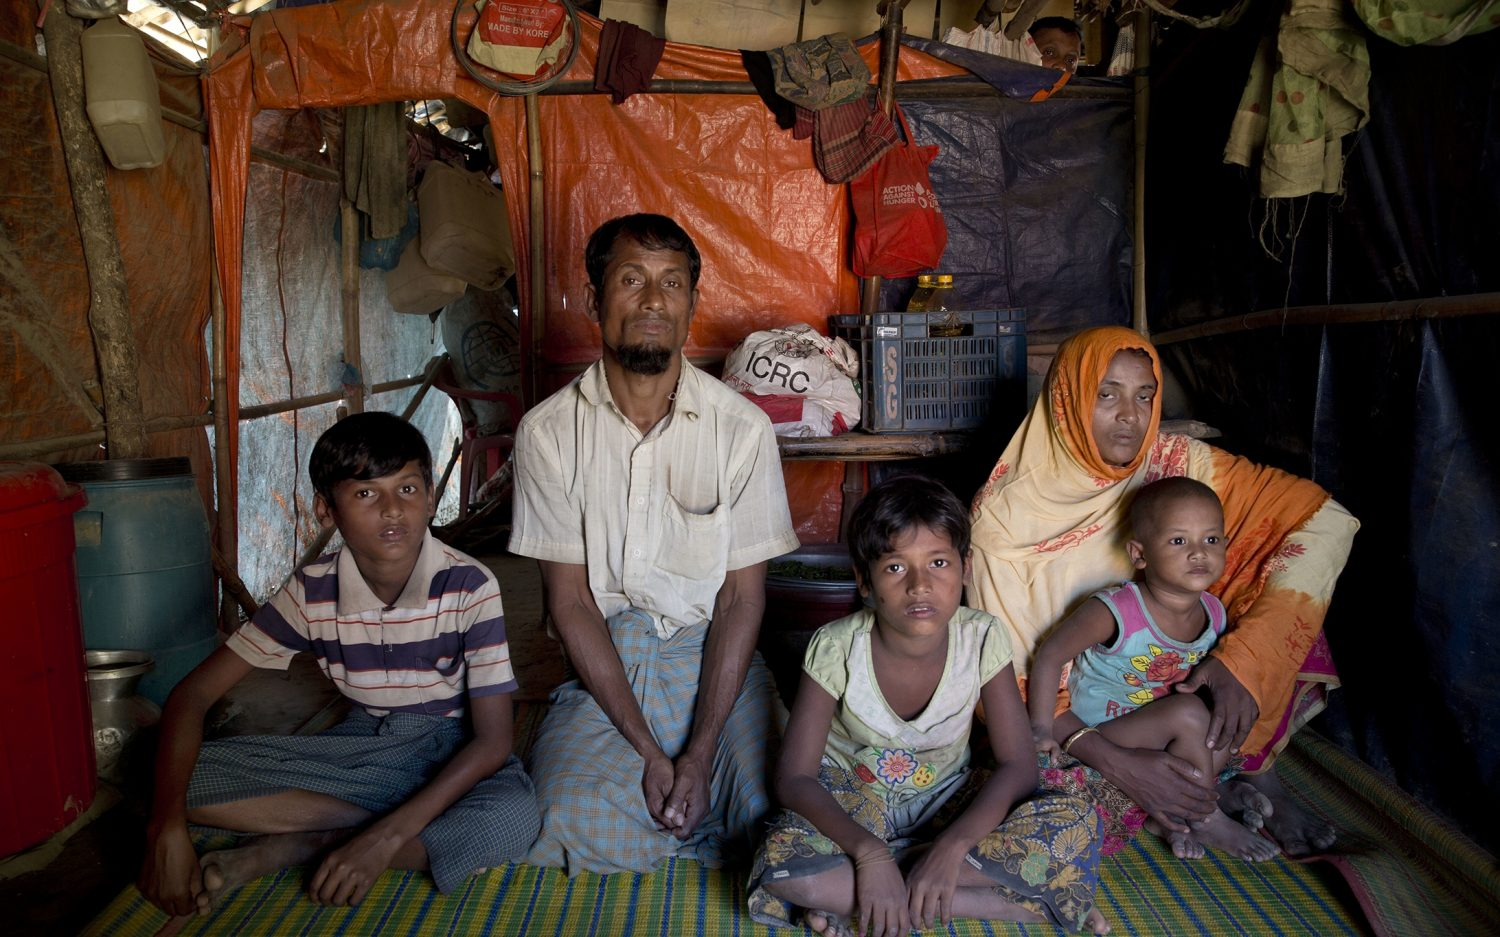 Refugees fear what Myanmar will do if they go home